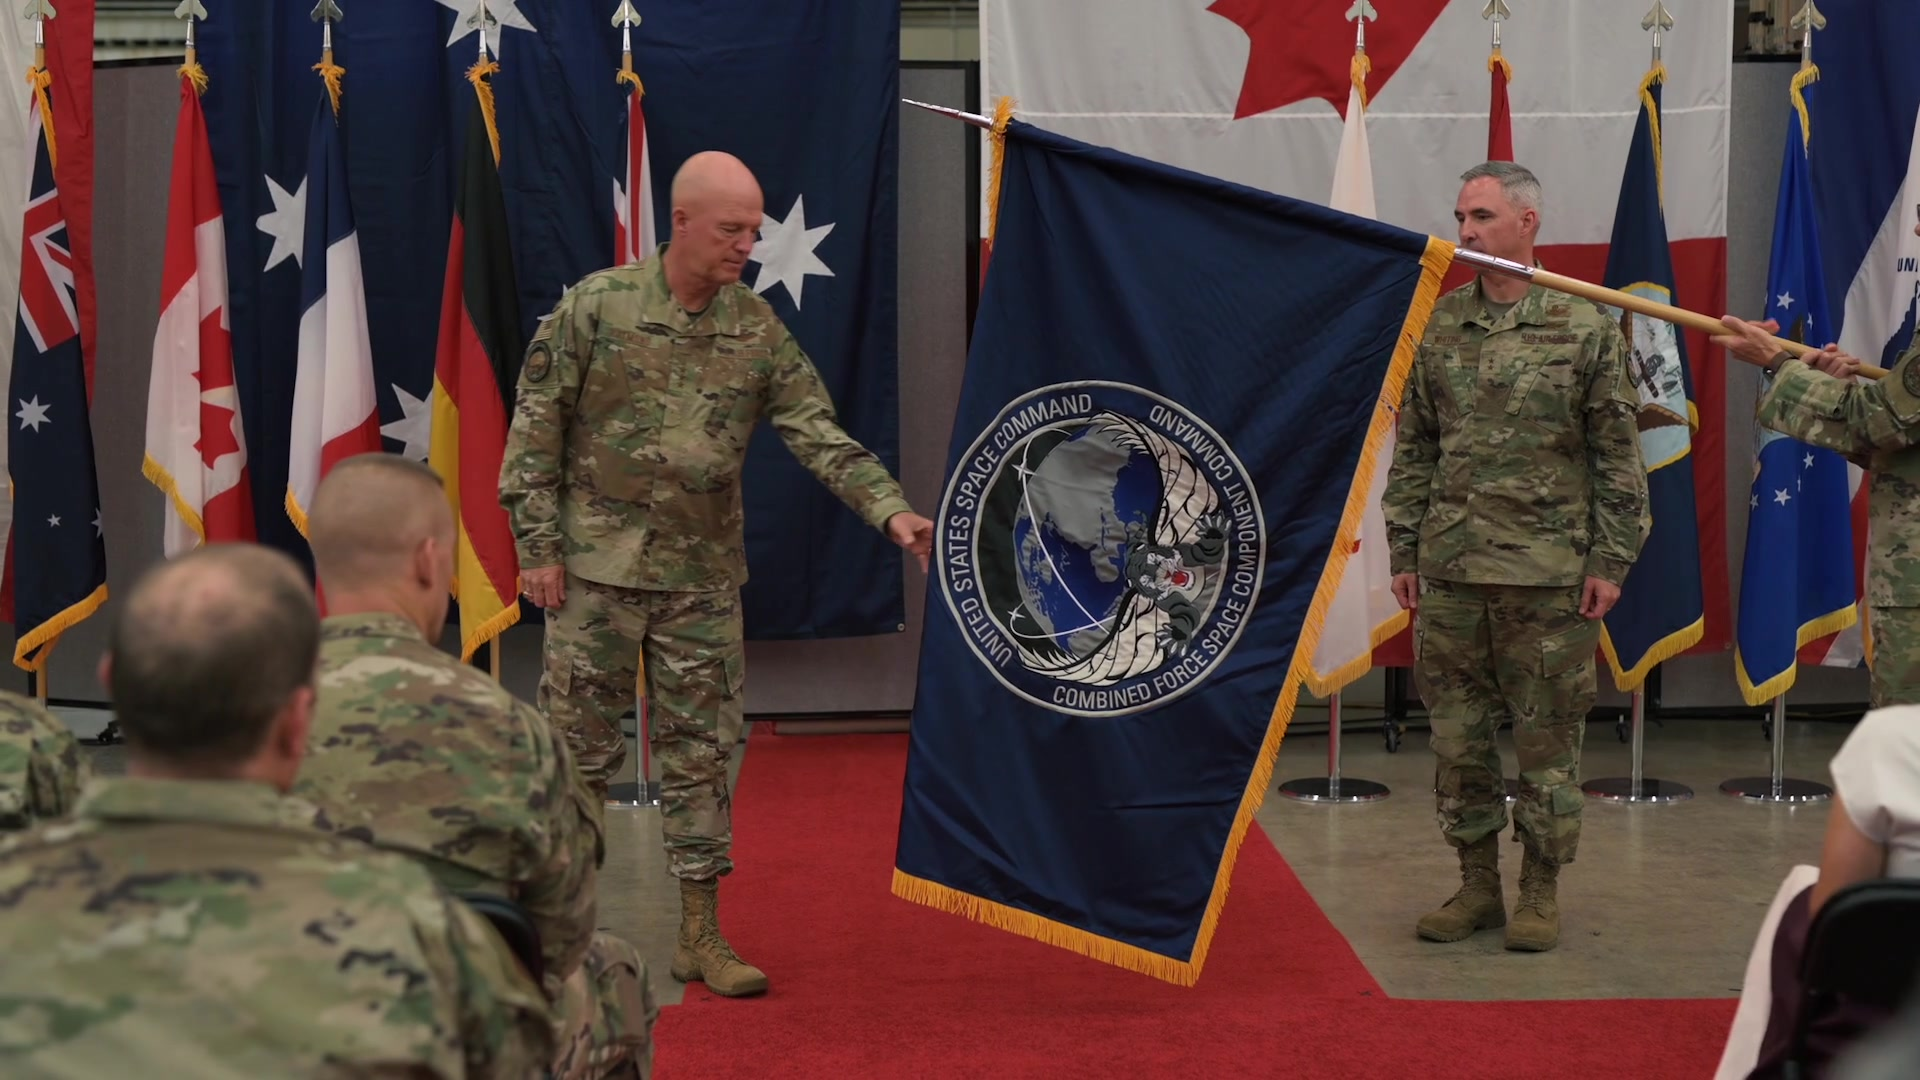 Joint and Coalition space officials from Australia, Canada, France, Germany, the United Kingdom and the United States attended a ceremony to formally recognize the establishment of Combined Force Space Component Command (CFSCC) at Vandenberg AFB, Calif., Oct. 1, 2019.  Through the ceremonious unfurling and passing of the CFSCC flag, the ceremony formally highlighted Raymond's appointment of Maj. Gen. Stephen N. Whiting as CFSCC Commander, and Brig. Gen. Matthew W. Davidson as CFSCC Deputy Commander. Additionally it recognized Whiting's appointment of Chief Master Sgt. John F. Bentivegna as the CFSCC Senior Enlisted Leader.  (U.S. Air Force video by Staff Sgt. JT Armstrong) (Additional video courtesy of Msgt. David Salanitri, NASA, SpaceX and Raytheon)